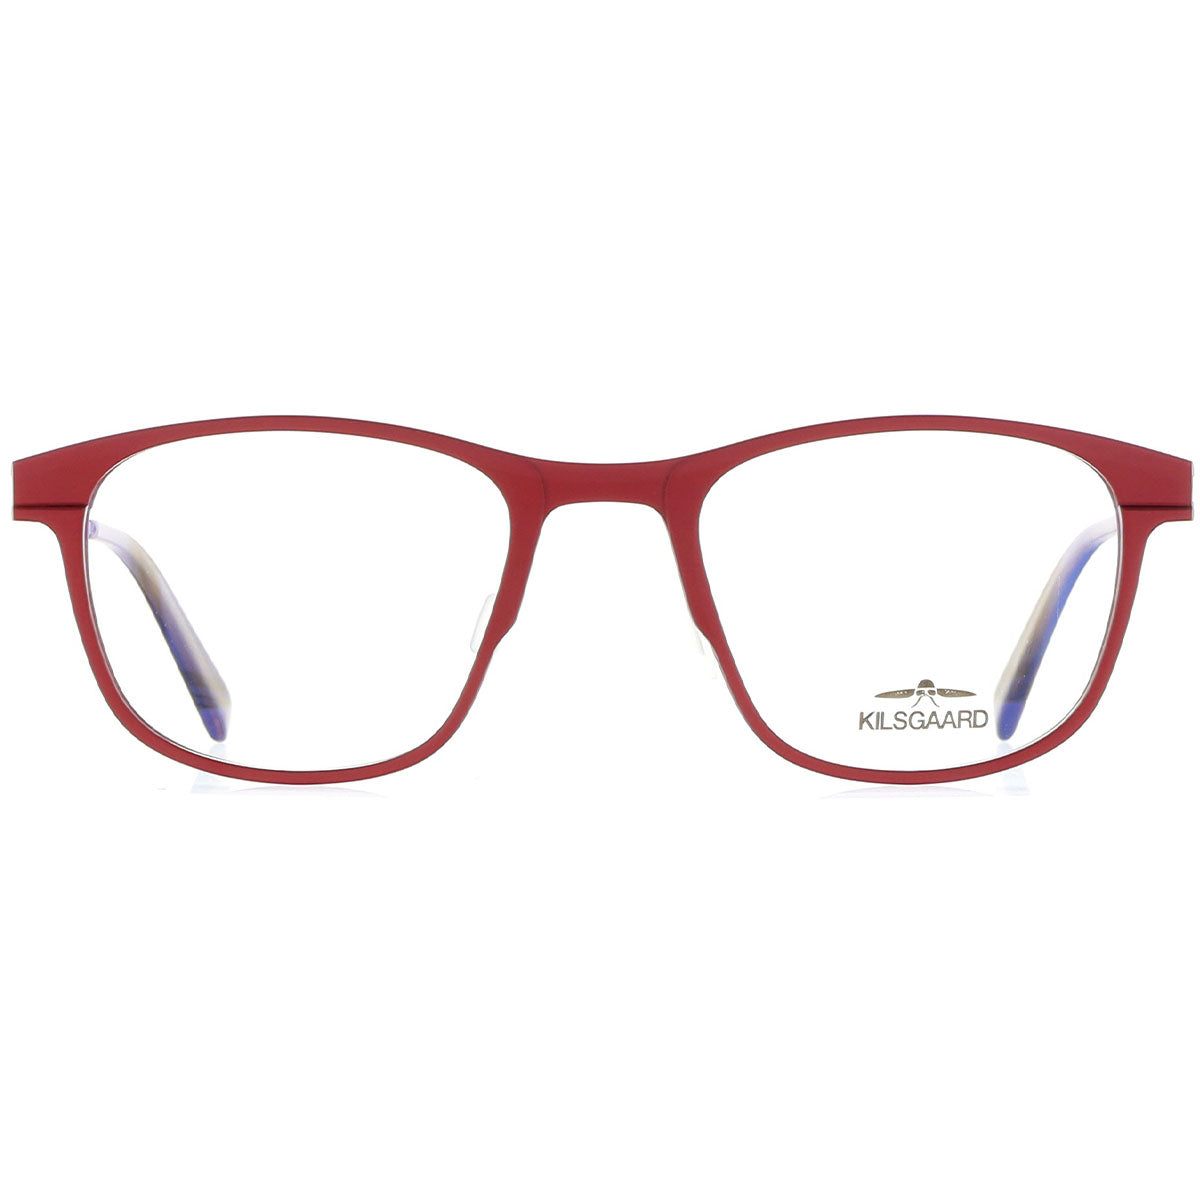 Kilsgaard Bonnelycke 63.3 Red